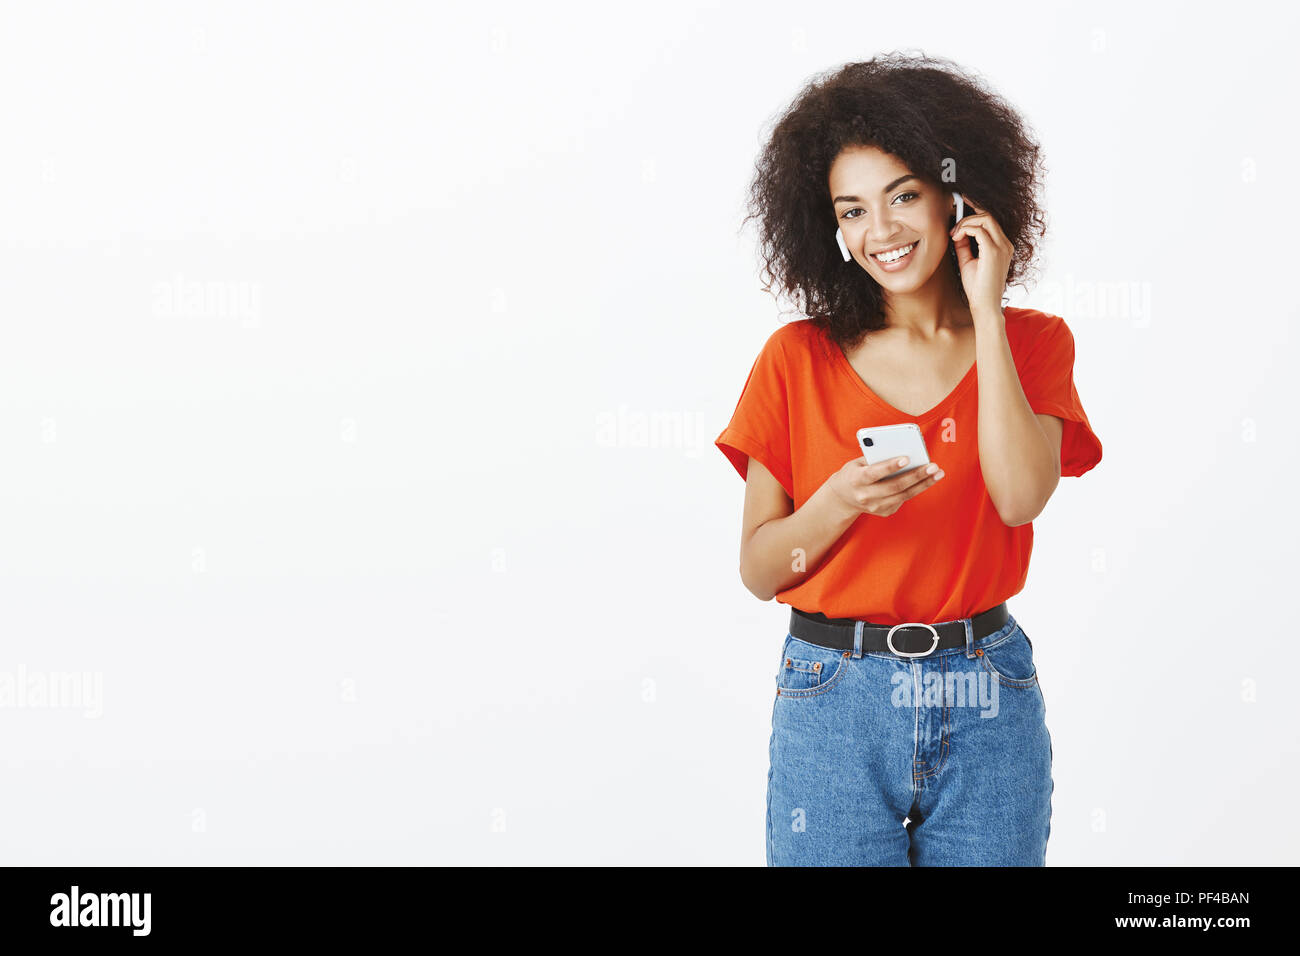 Best earphones ever. Positive carefree attractive woman with dark skin and afro haircut, wearing wireless earbuds, touching ear and holding smartphone while talking with friends with device - Stock Image